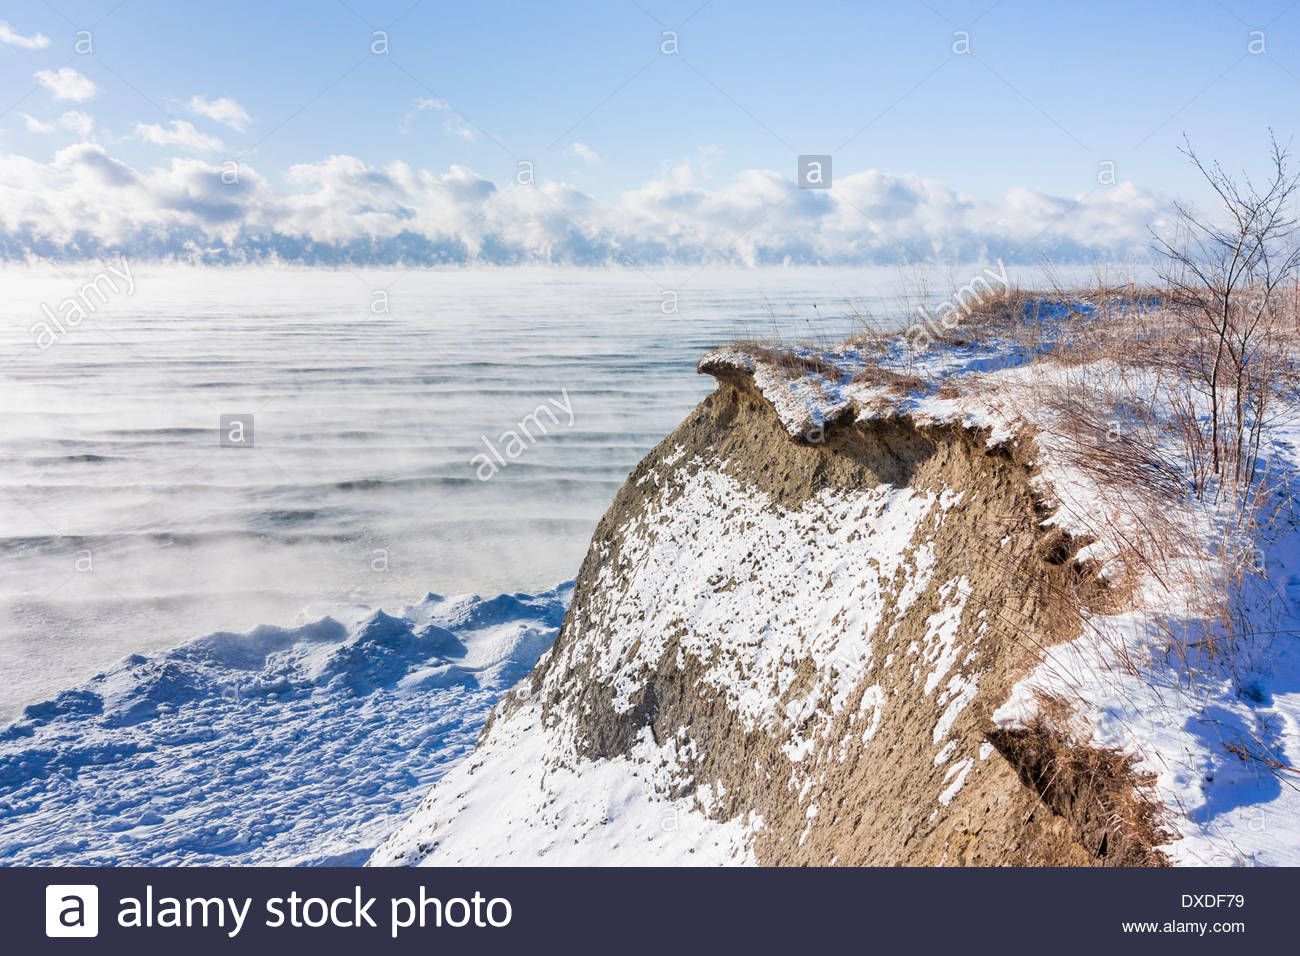 Sea smoke condenses over open Lake Ontario on a windy cold -20C winter day at the Scarborough Bluffs in Toronto Ontario Canada - Stock Image